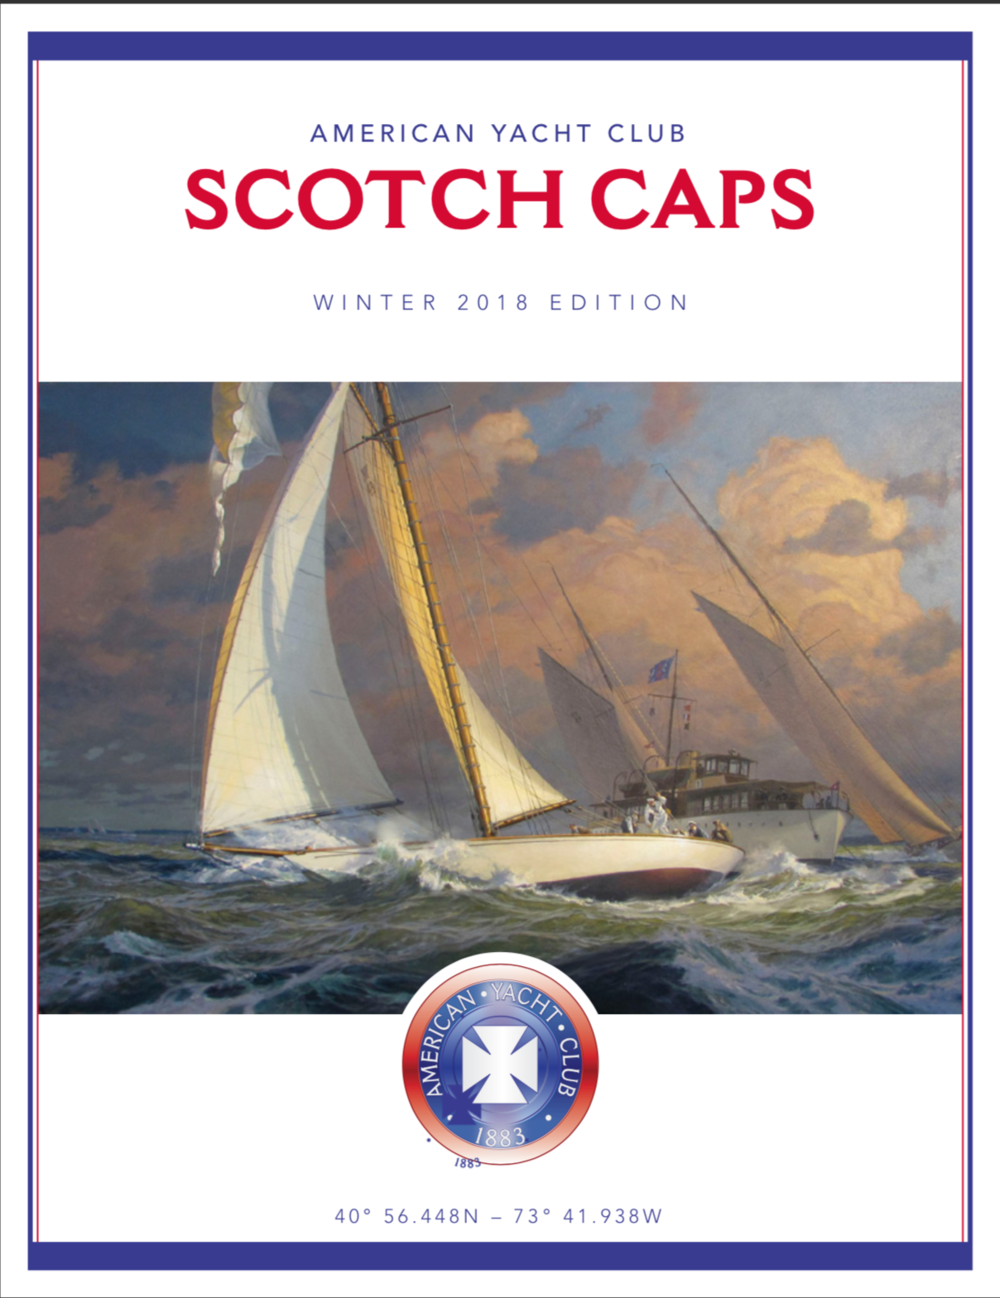 Scotch Caps Winter 2018